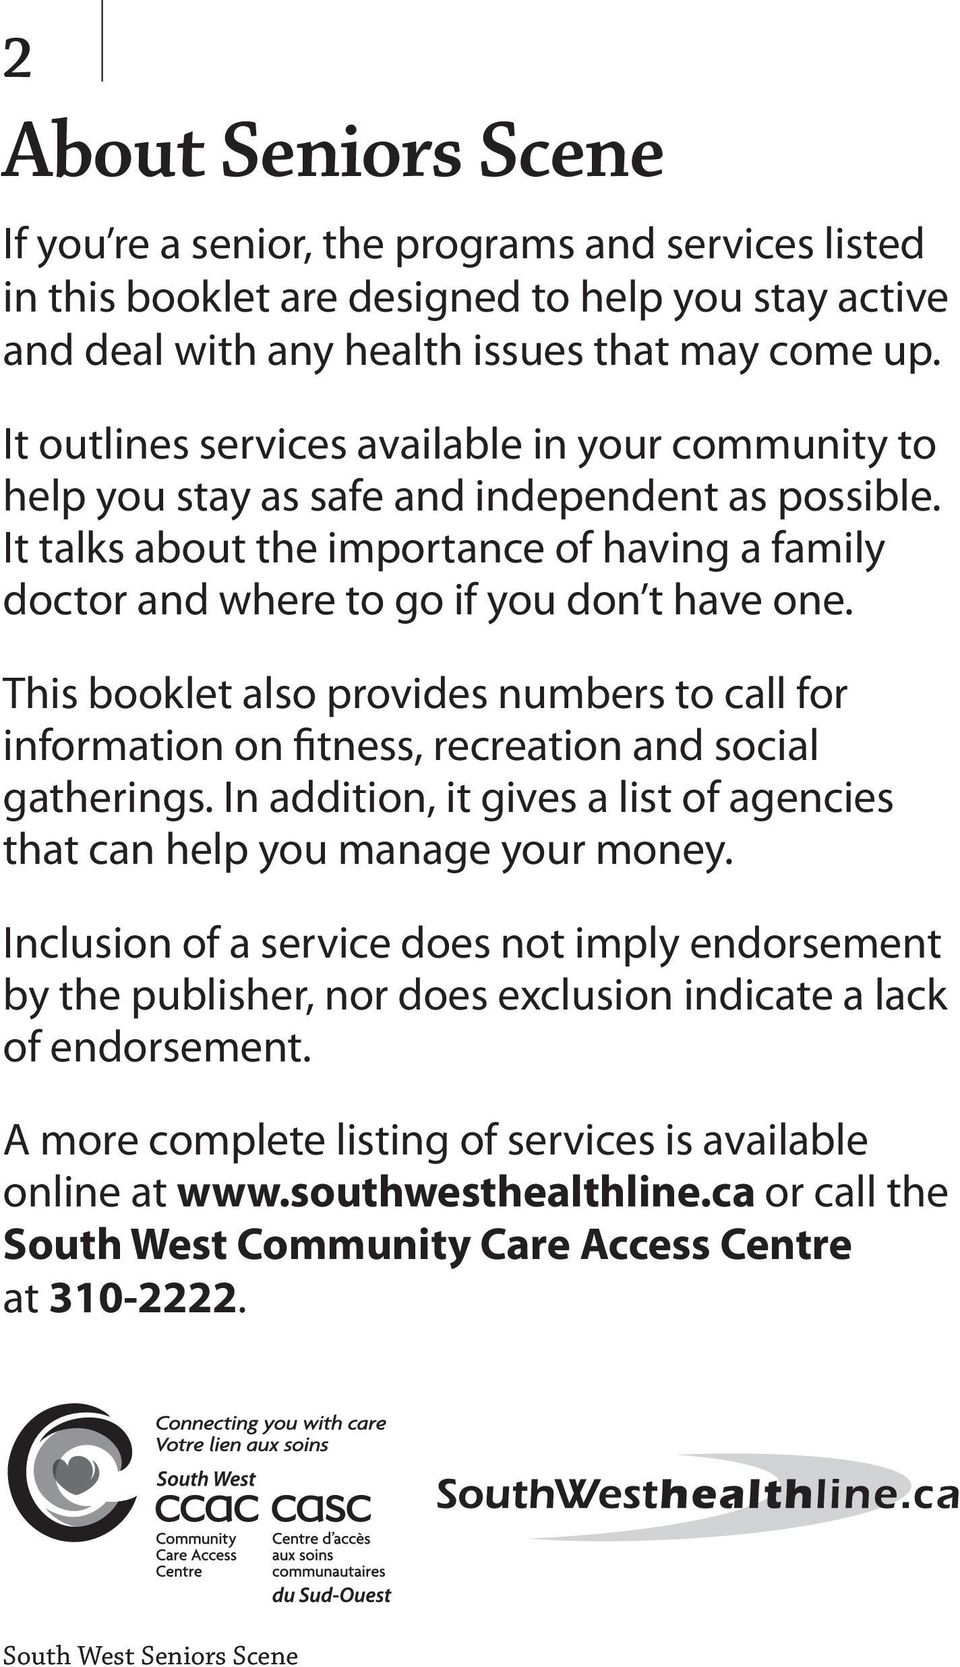 This booklet also provides numbers to call for information on fitness, recreation and social gatherings. In addition, it gives a list of agencies that can help you manage your money.